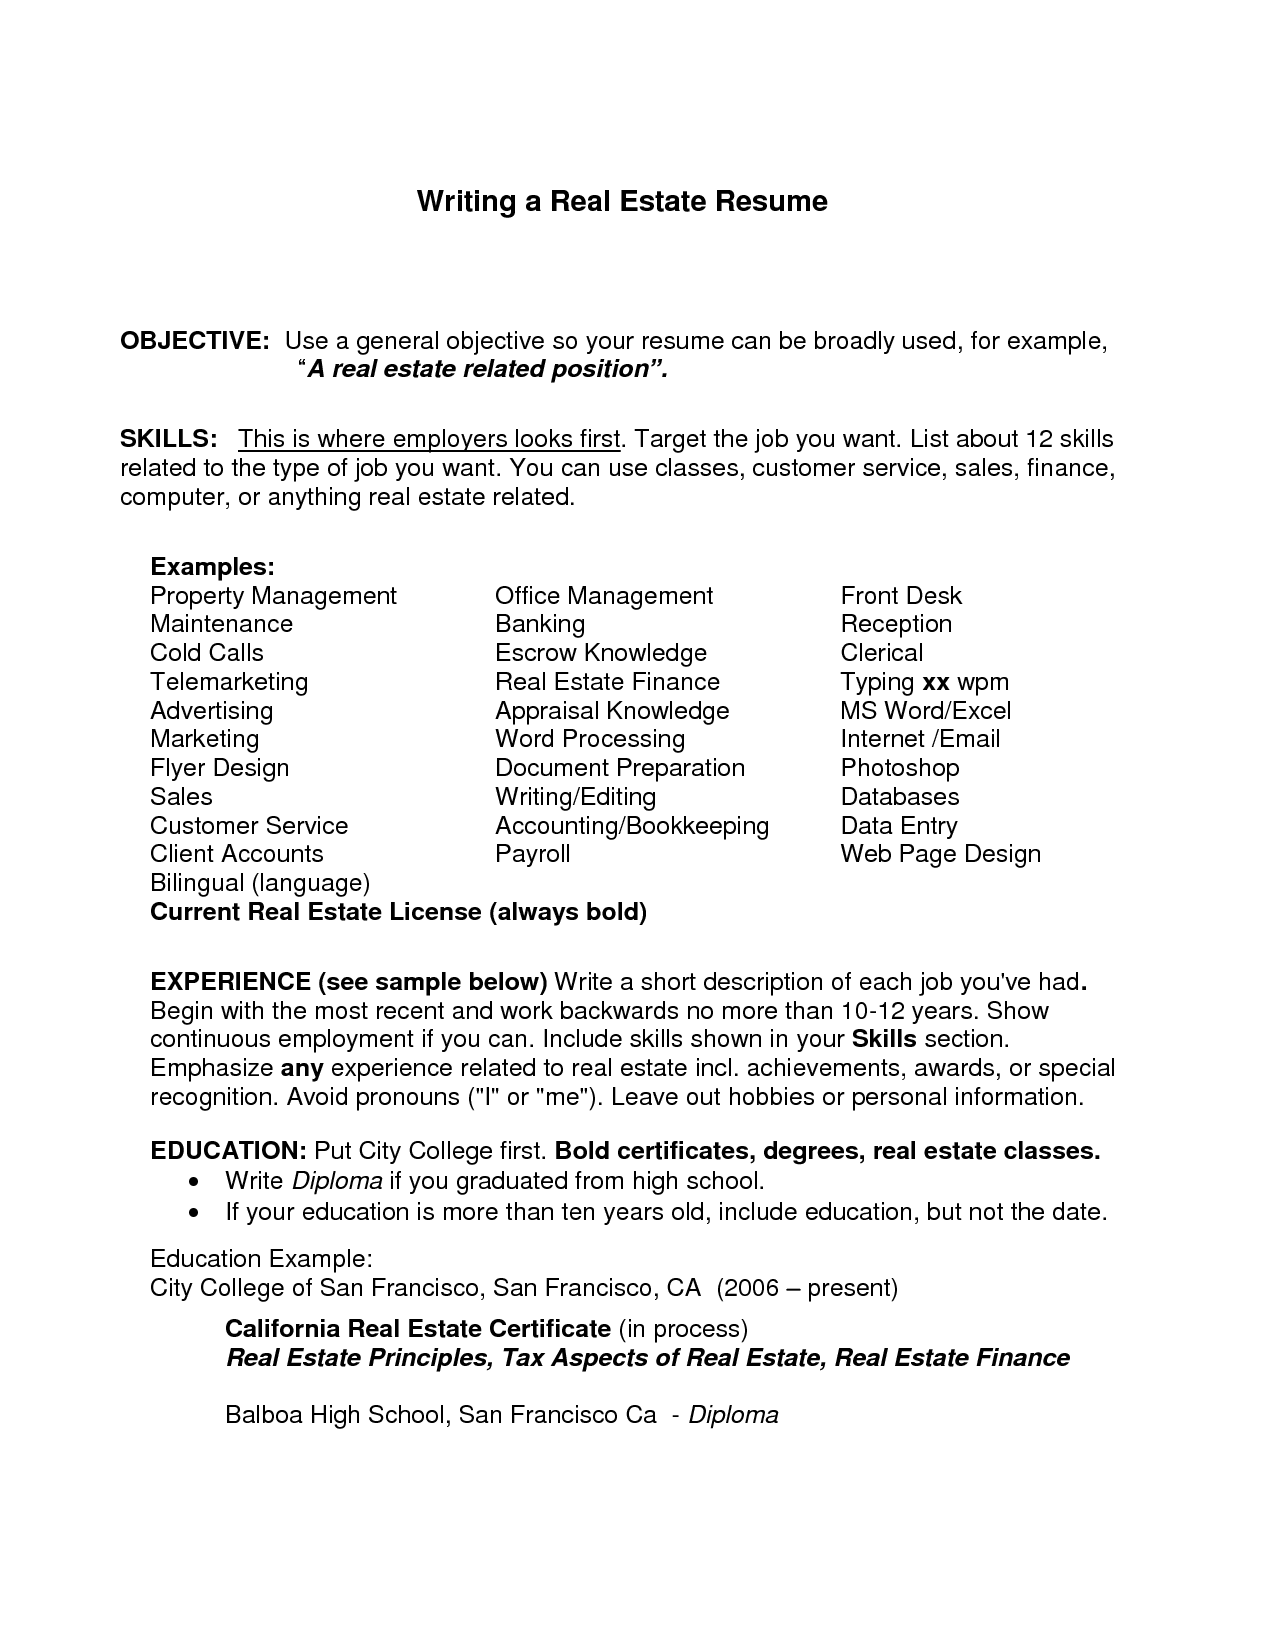 General resume objective examples job resume objective examples general resume objective examples job resume objective examples madrichimfo Image collections